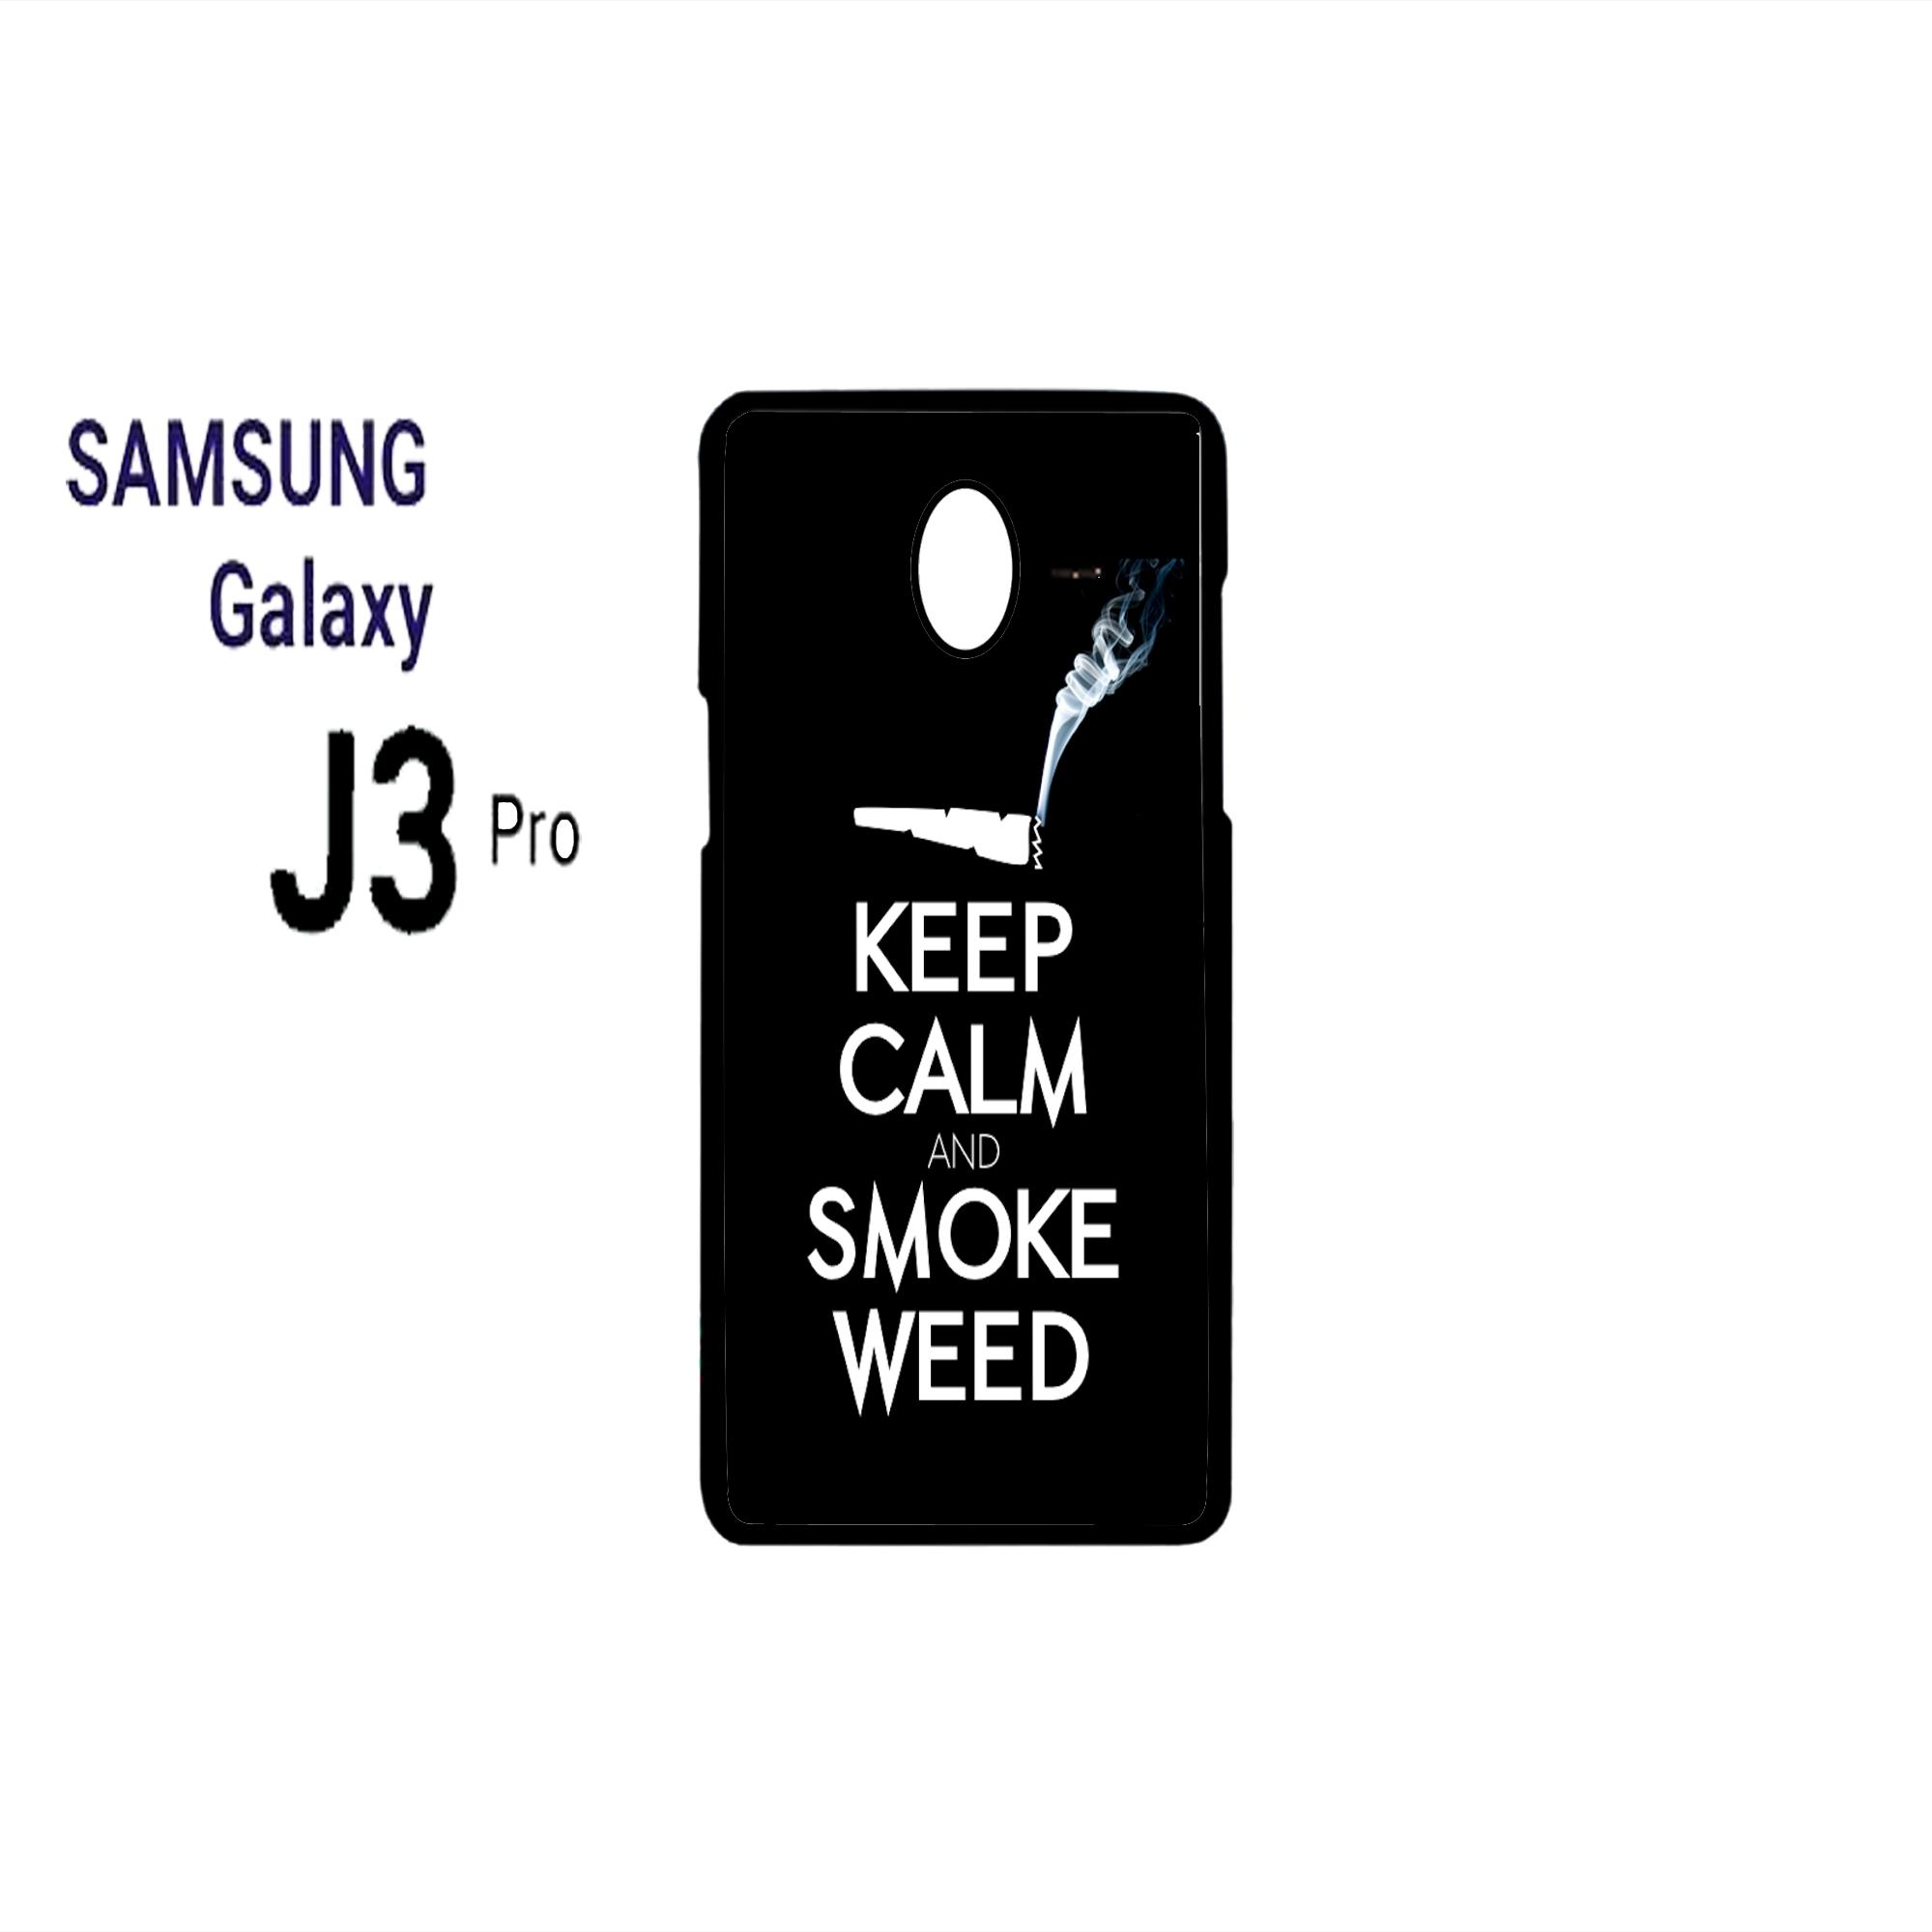 BCS Custom Fashion Phone Case New Samsung Galaxy J5 ProIDR38000. Rp 38.000